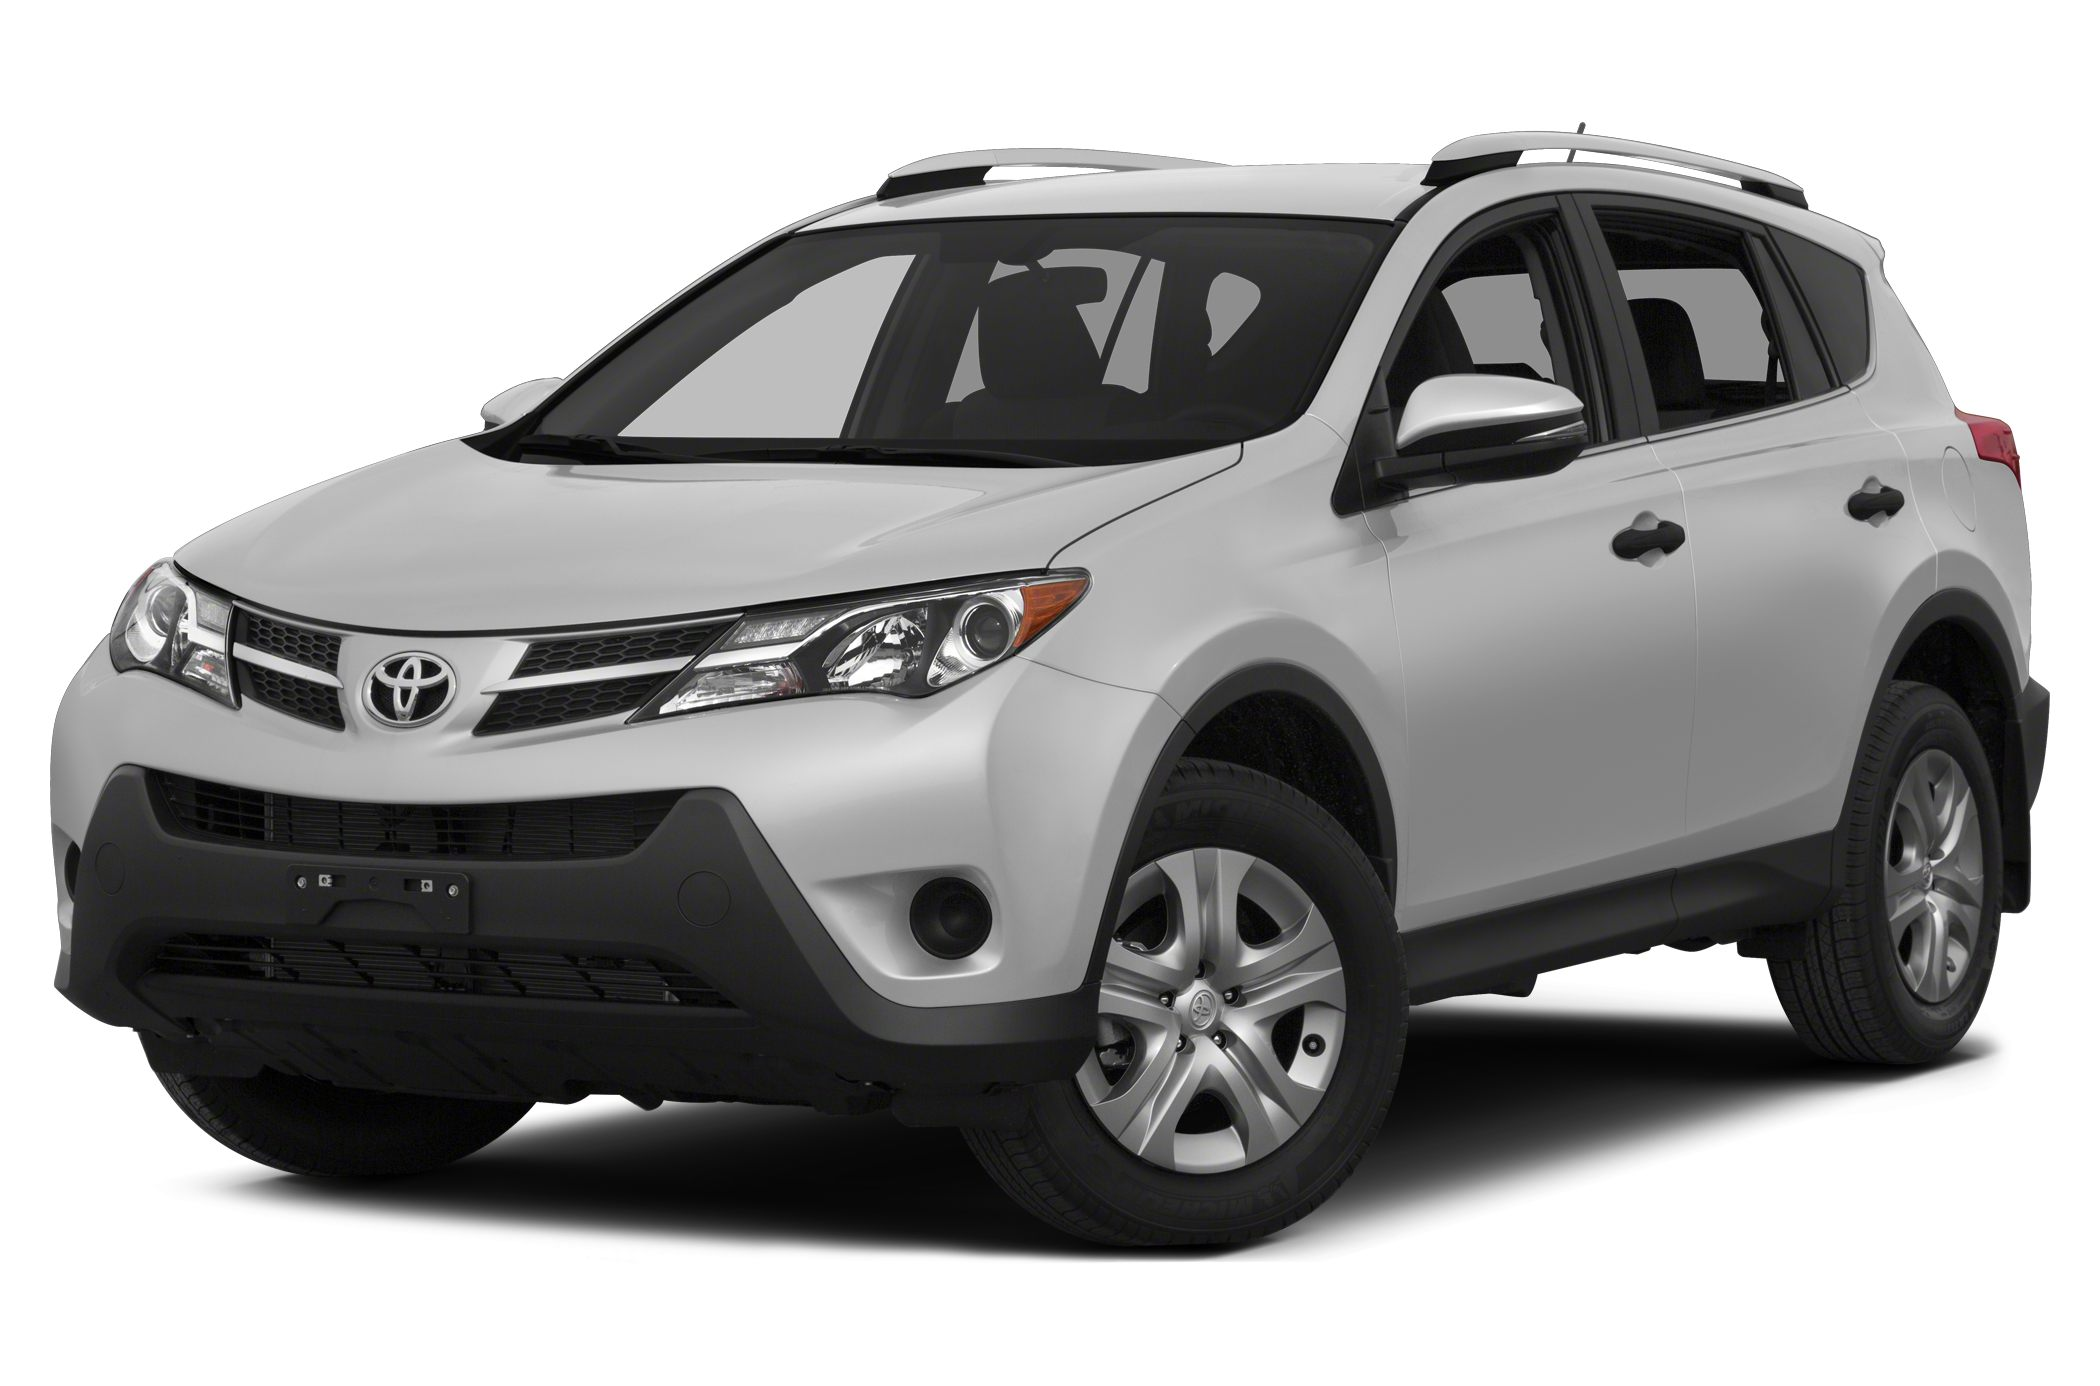 2015 Toyota RAV4 LE SUV for sale in Warren for $25,030 with 5 miles.